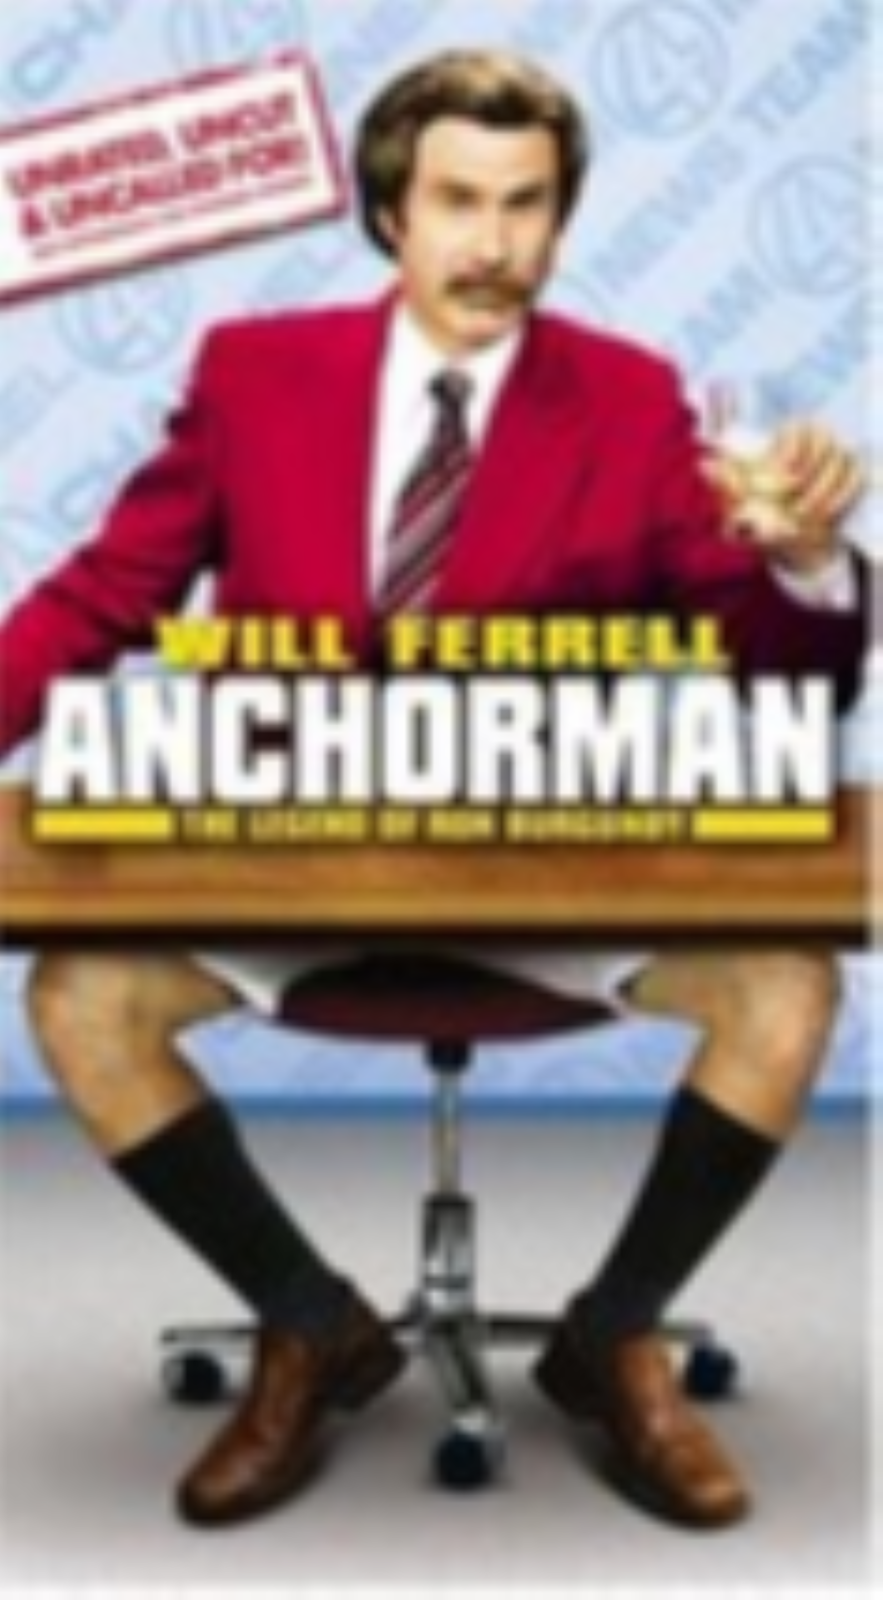 Anchorman - The Legend of Ron Burgundy Vhs